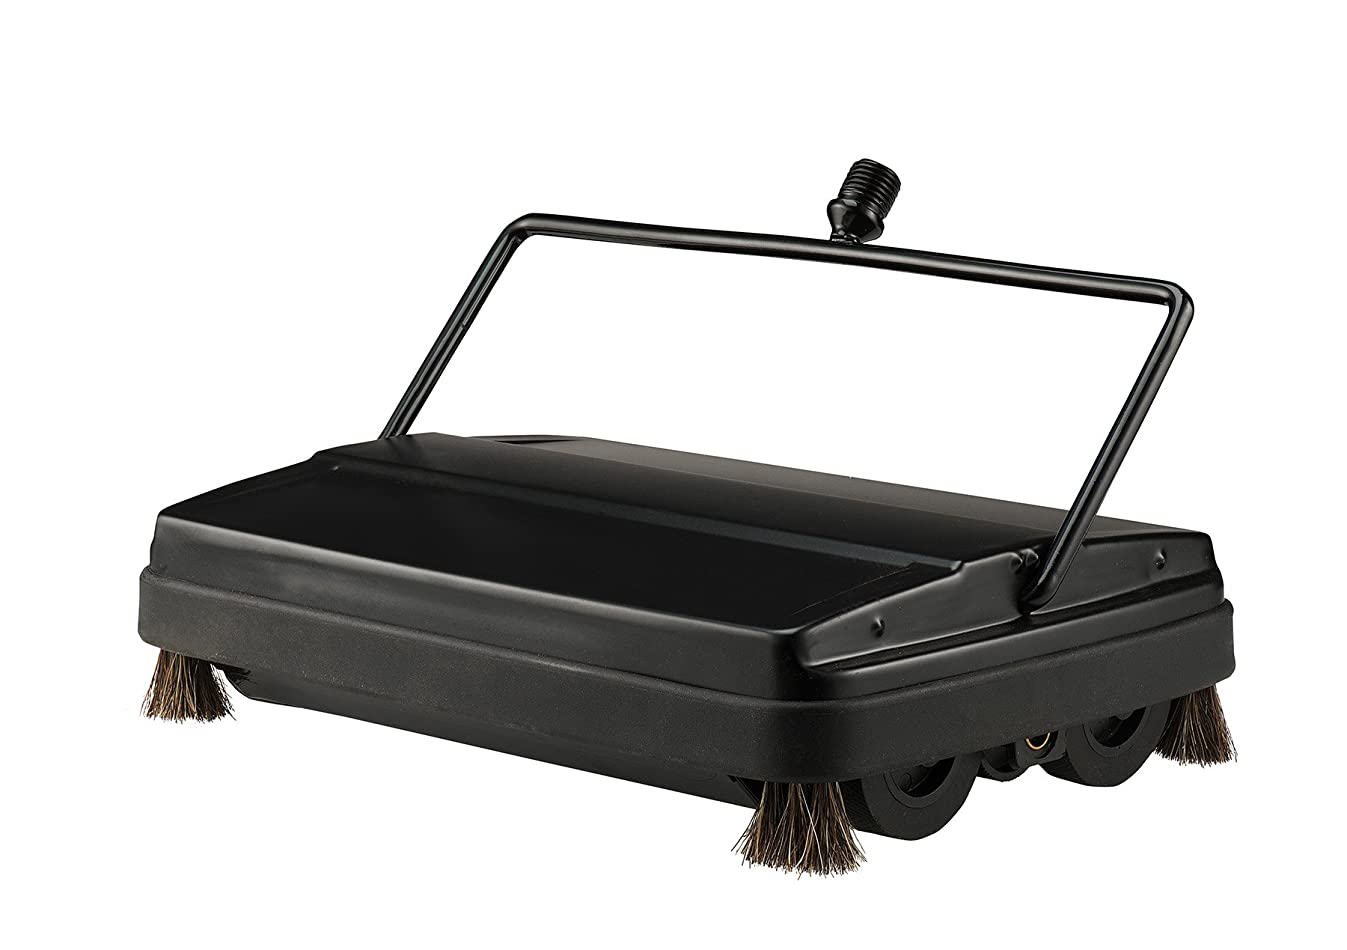 Sagler Compact Carpet Sweeper and Floor Sweeper High Quality Sweepers Electrostatic Sweeper